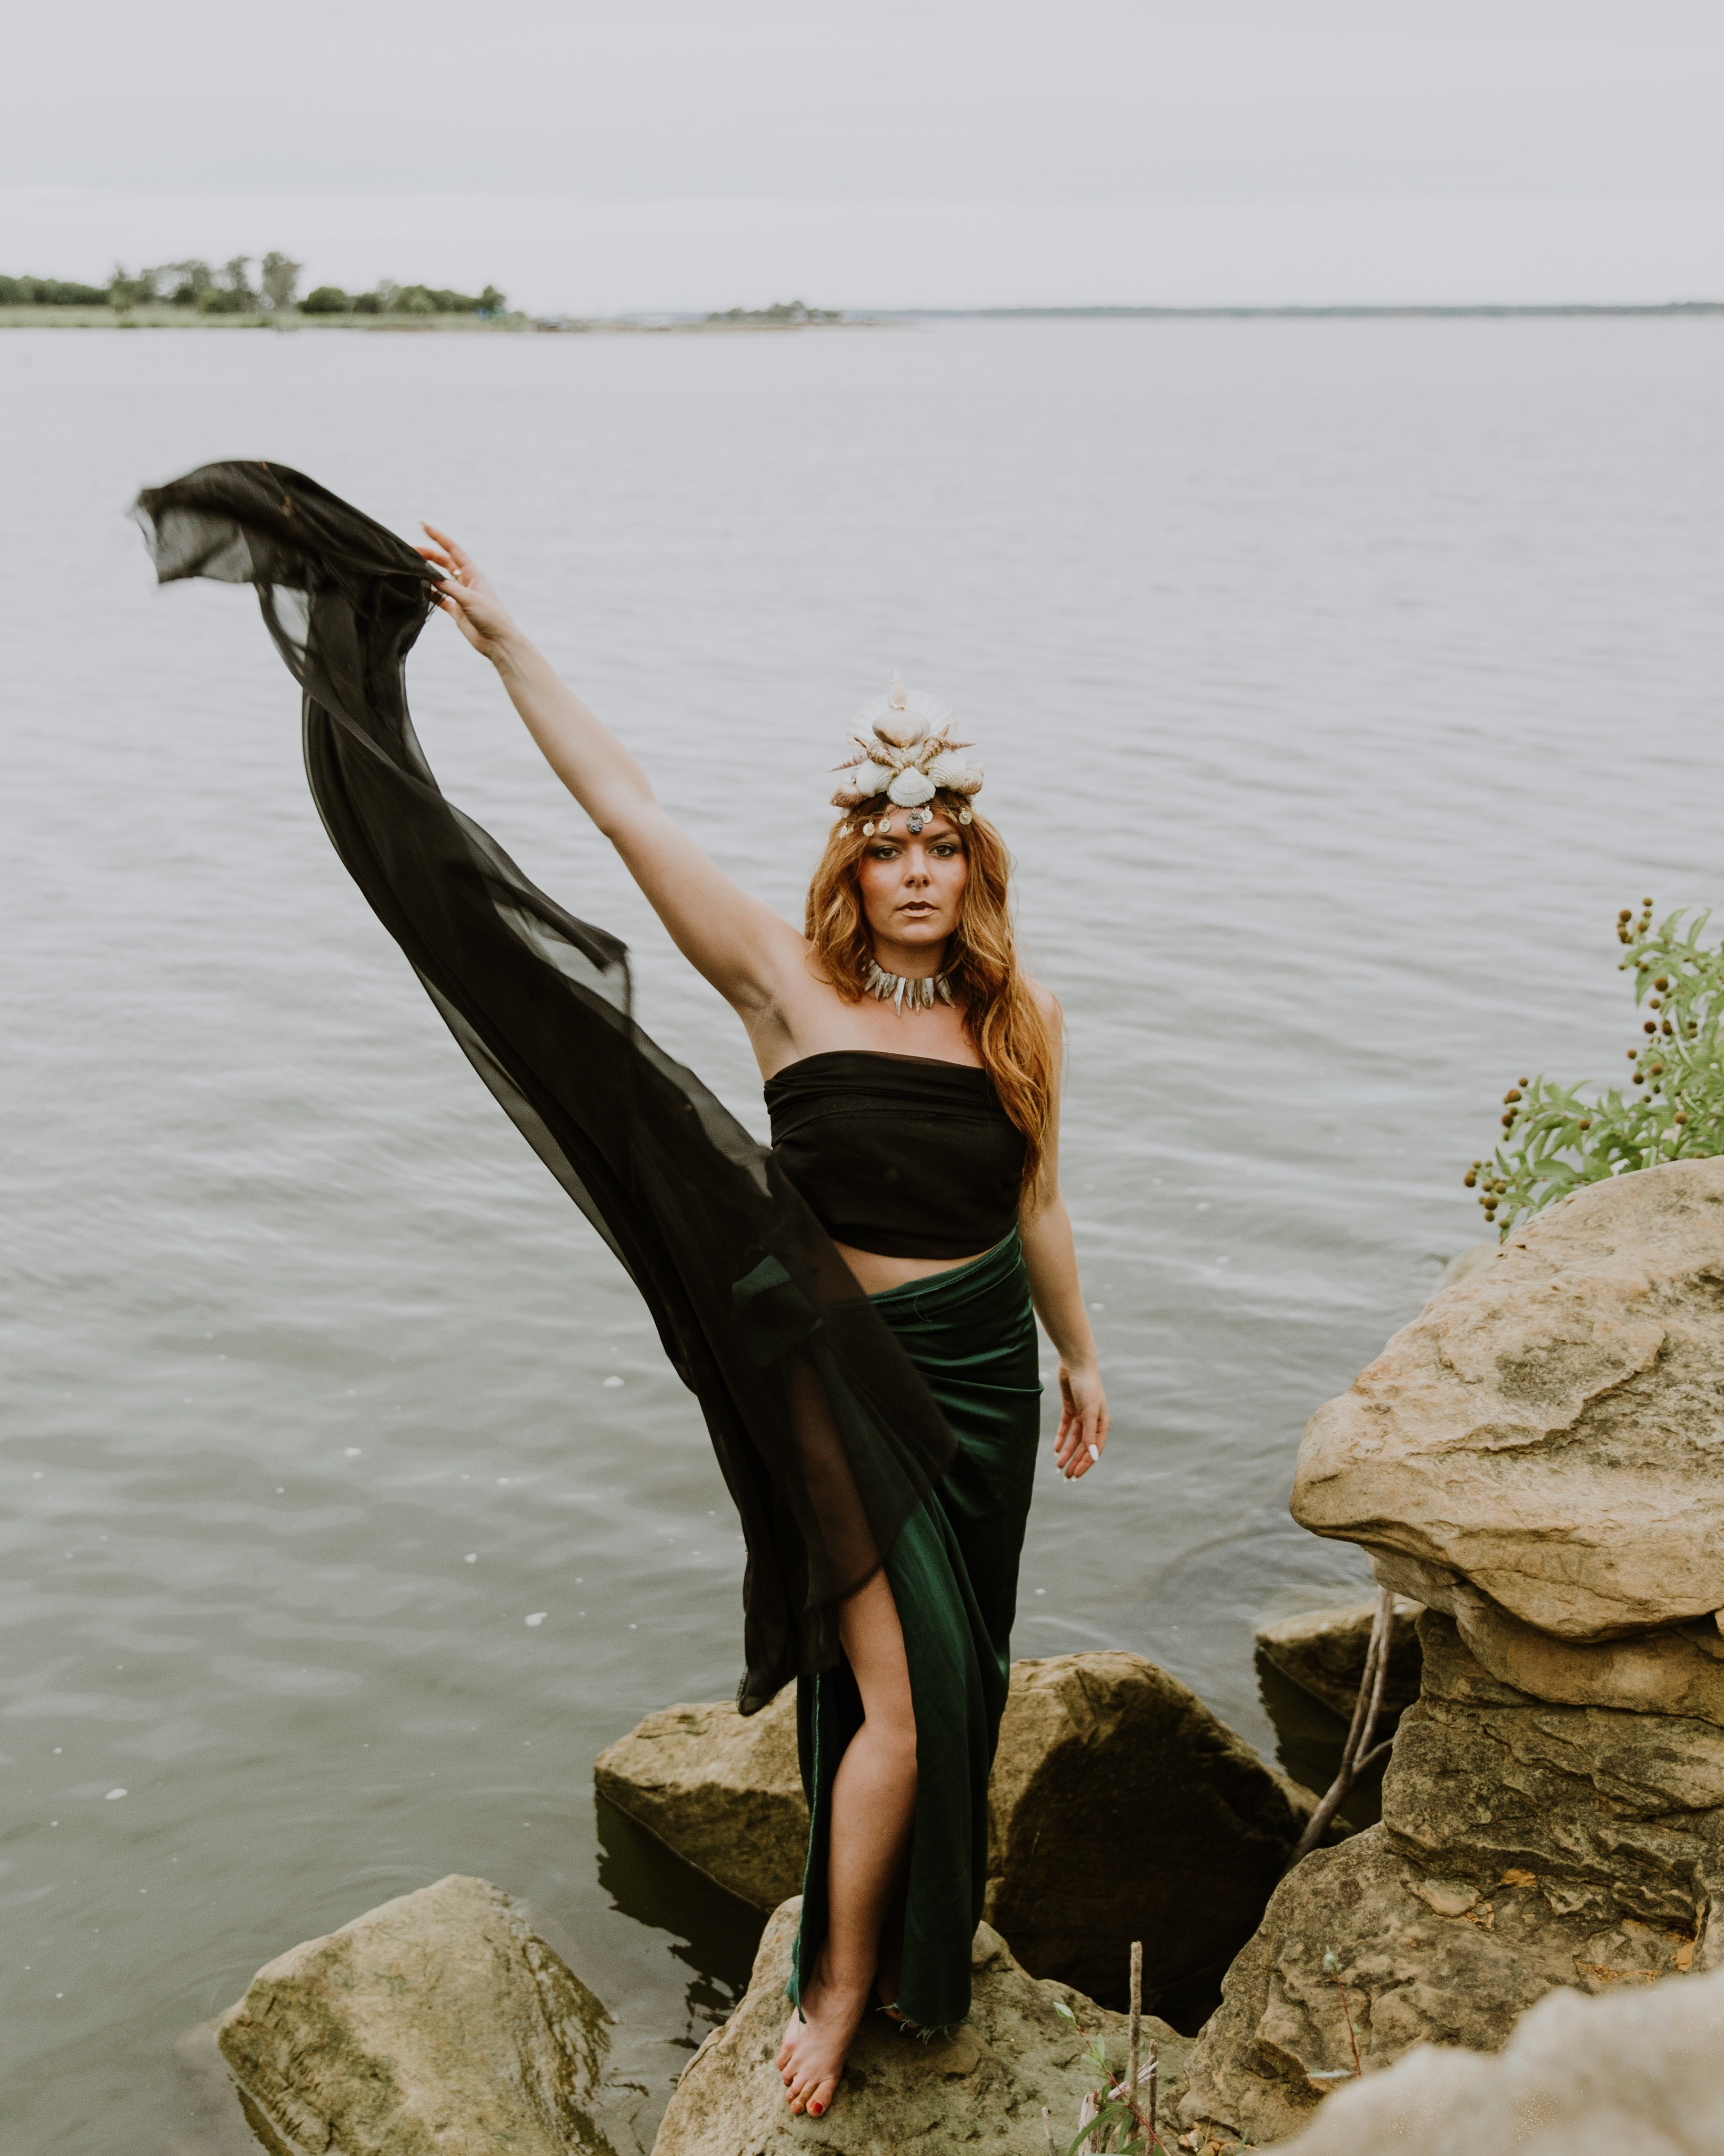 woman waving her dress on stone formation beside body of water